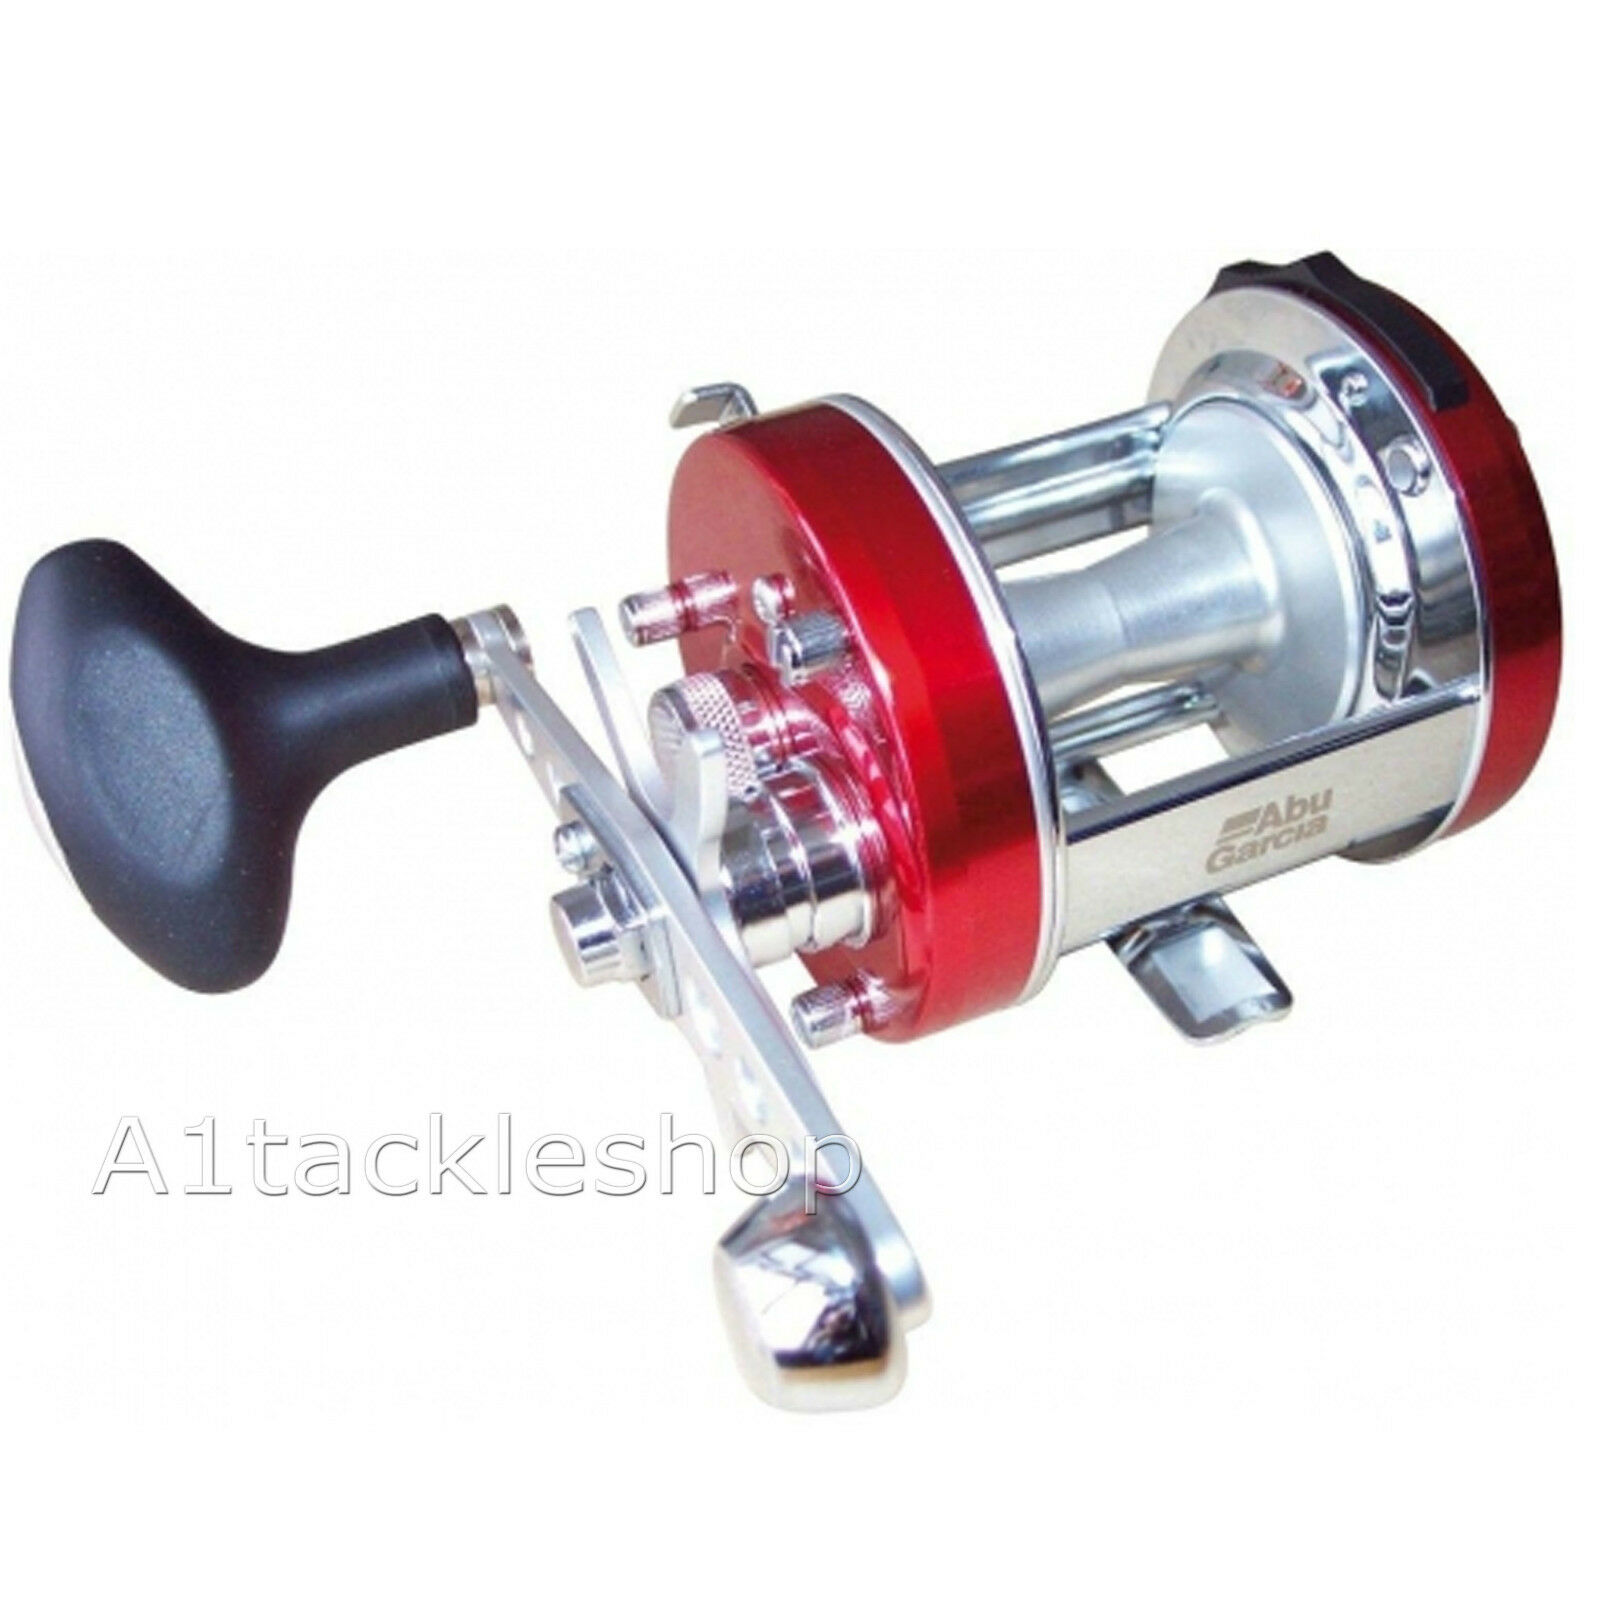 ABU Ambassadeur 6500  C3 CT Mag High Speed Fishing Multiplyer Reel  save 60% discount and fast shipping worldwide